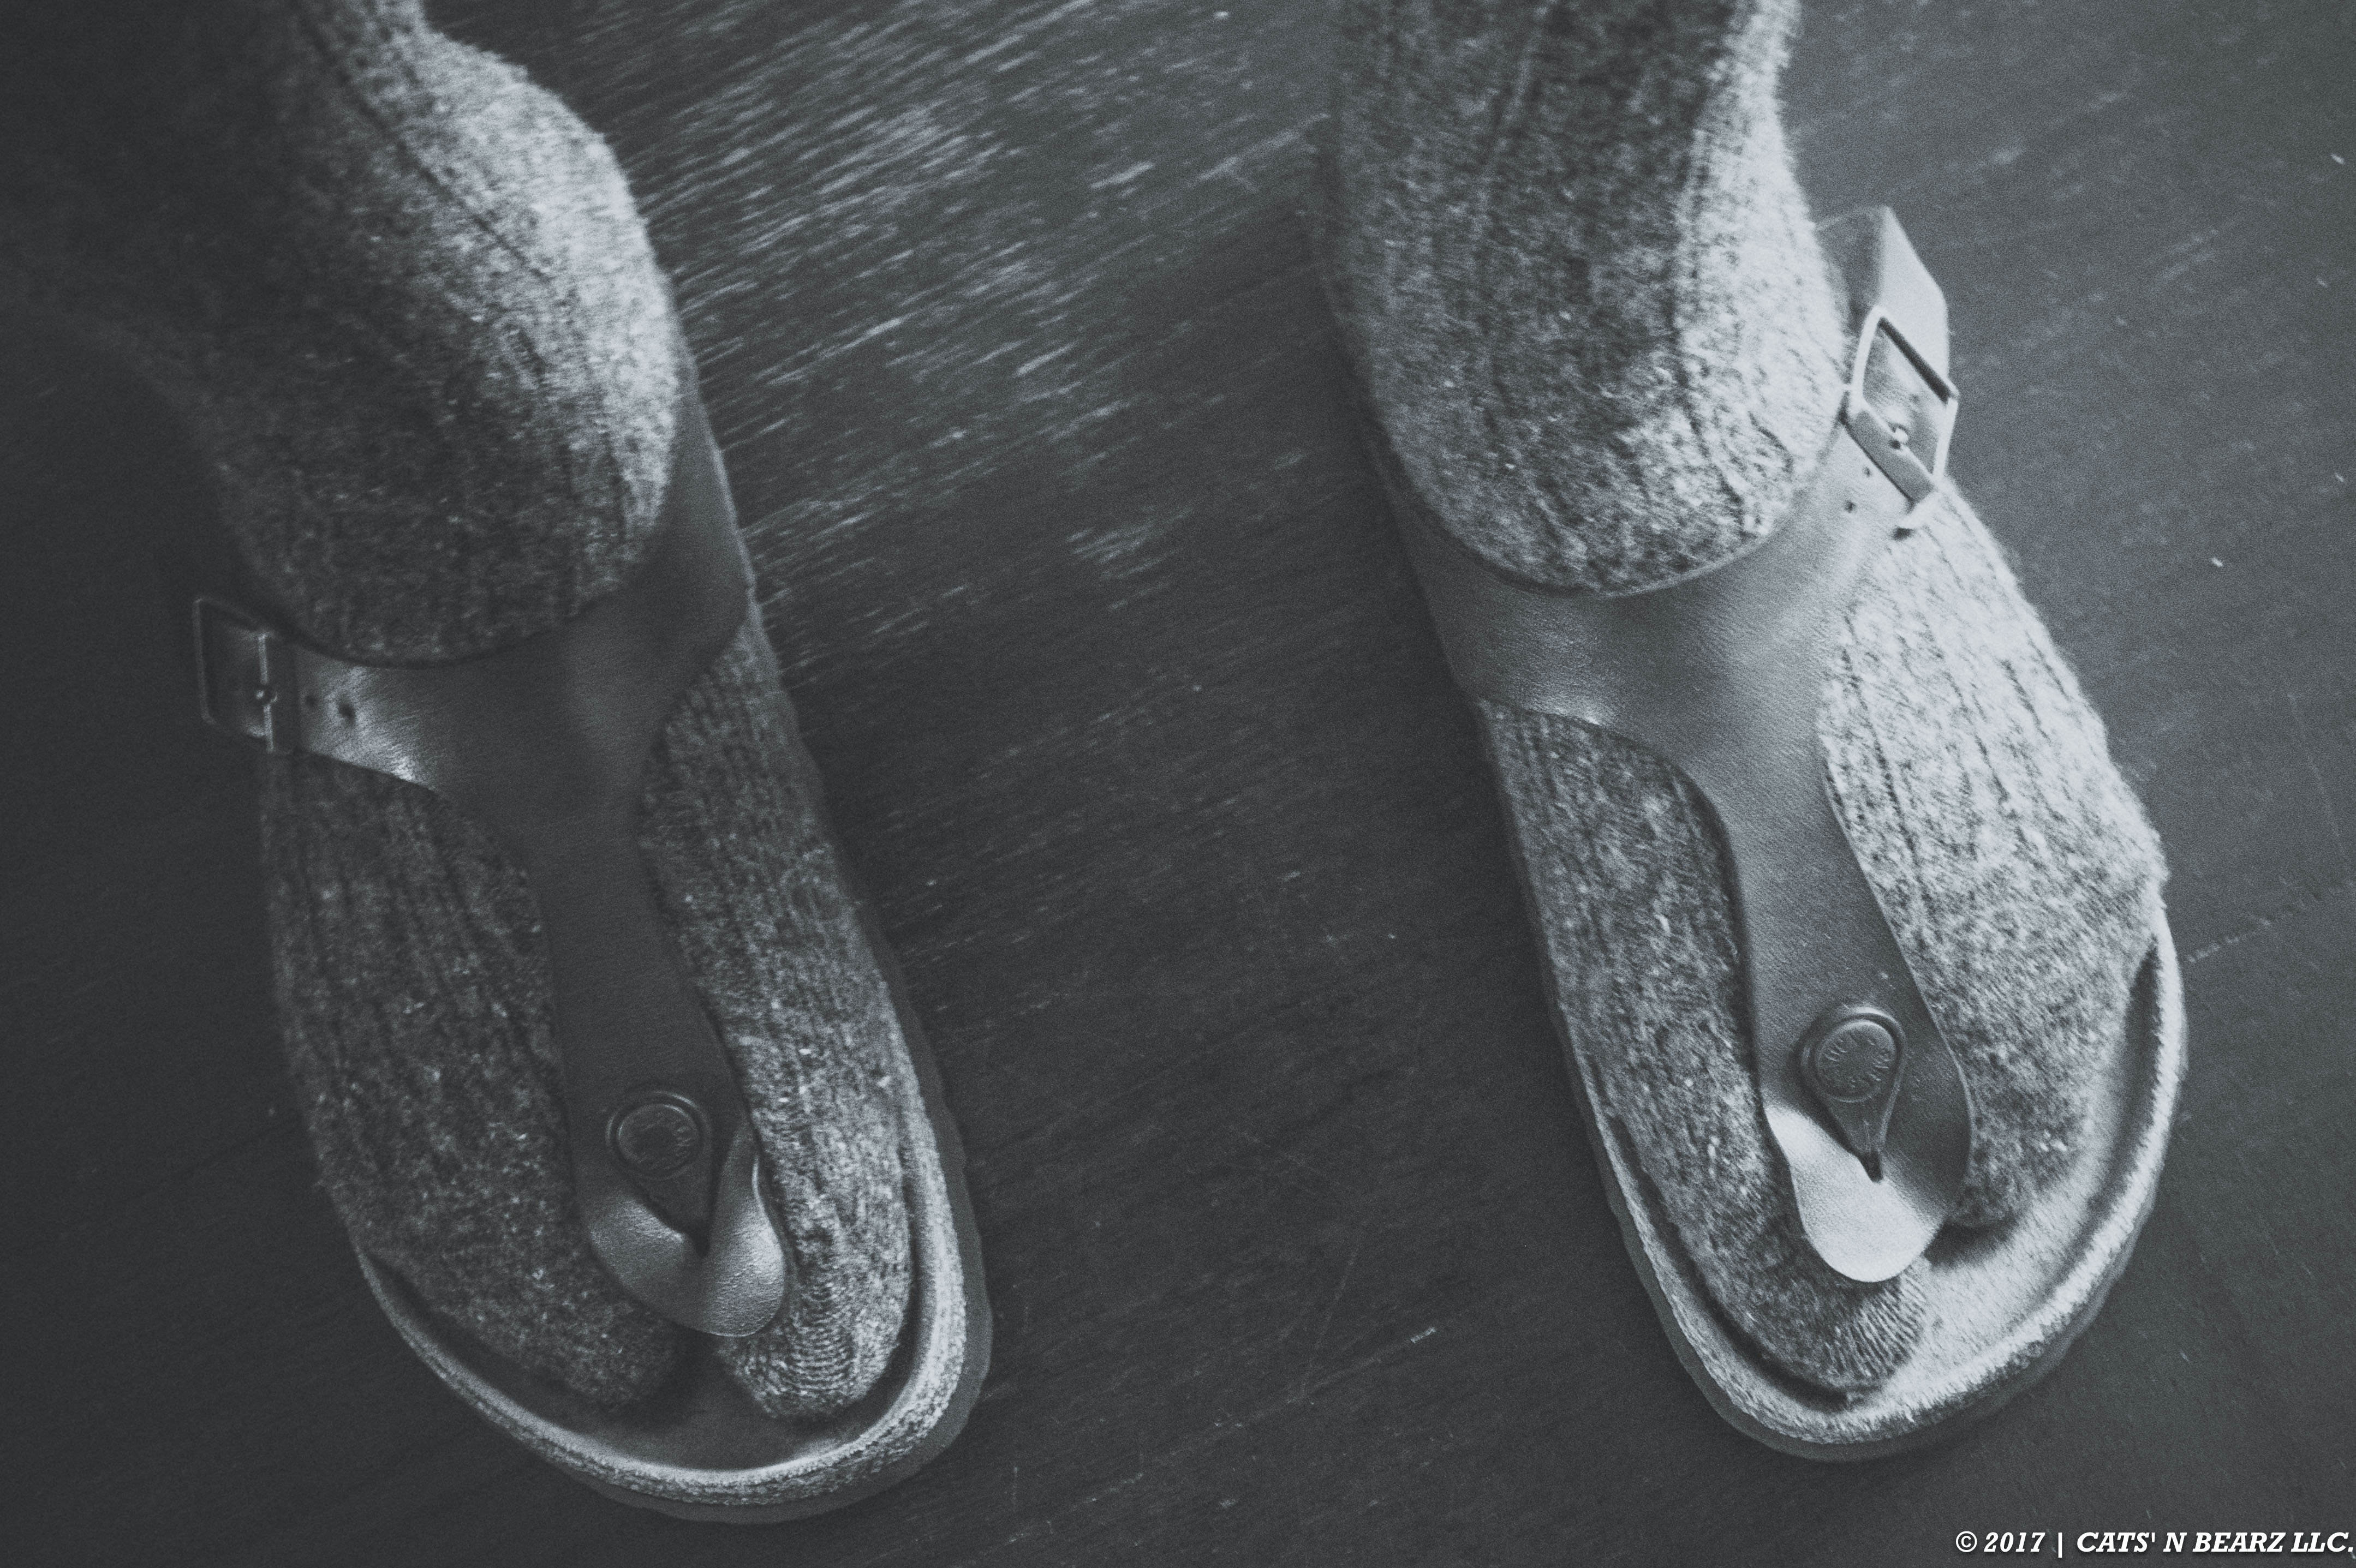 A Picture of Momma C's Feet Because A Mother's Feet Carry the Weight of the Family that No One Ever See's.